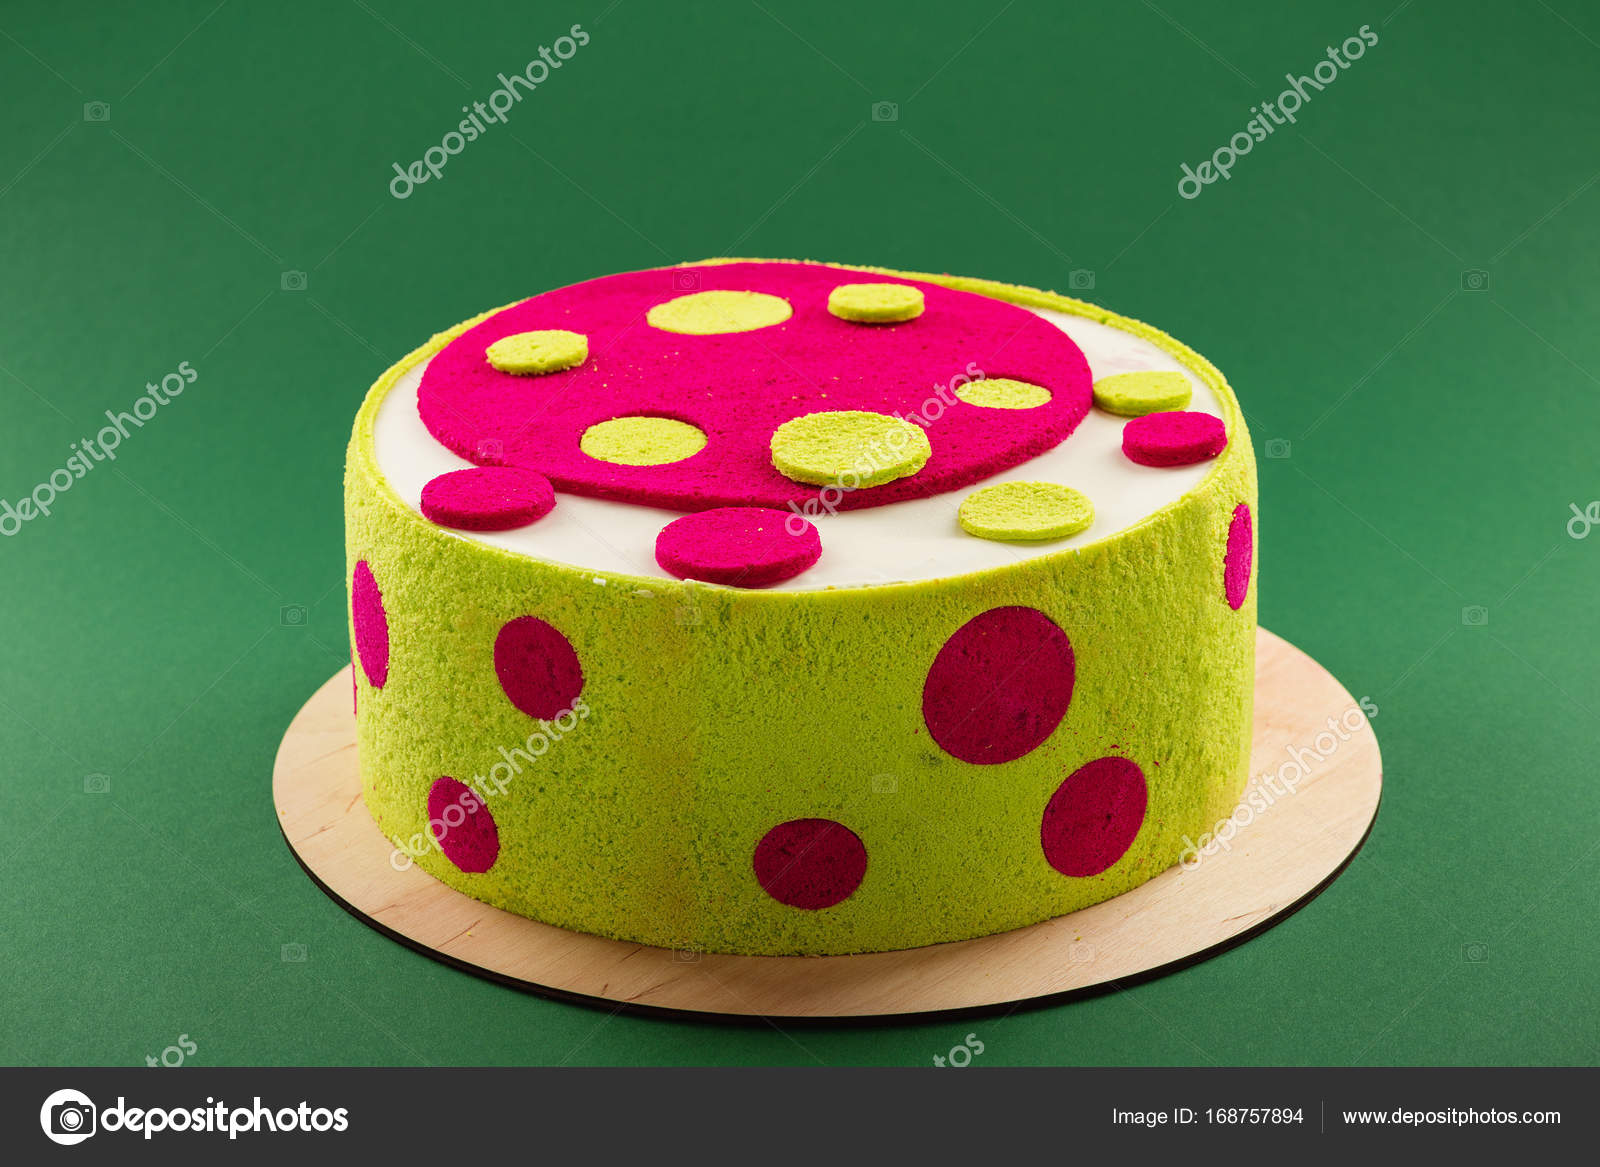 Bright Colorful Birthday Cake With Green And Pink Dots Stock Photo